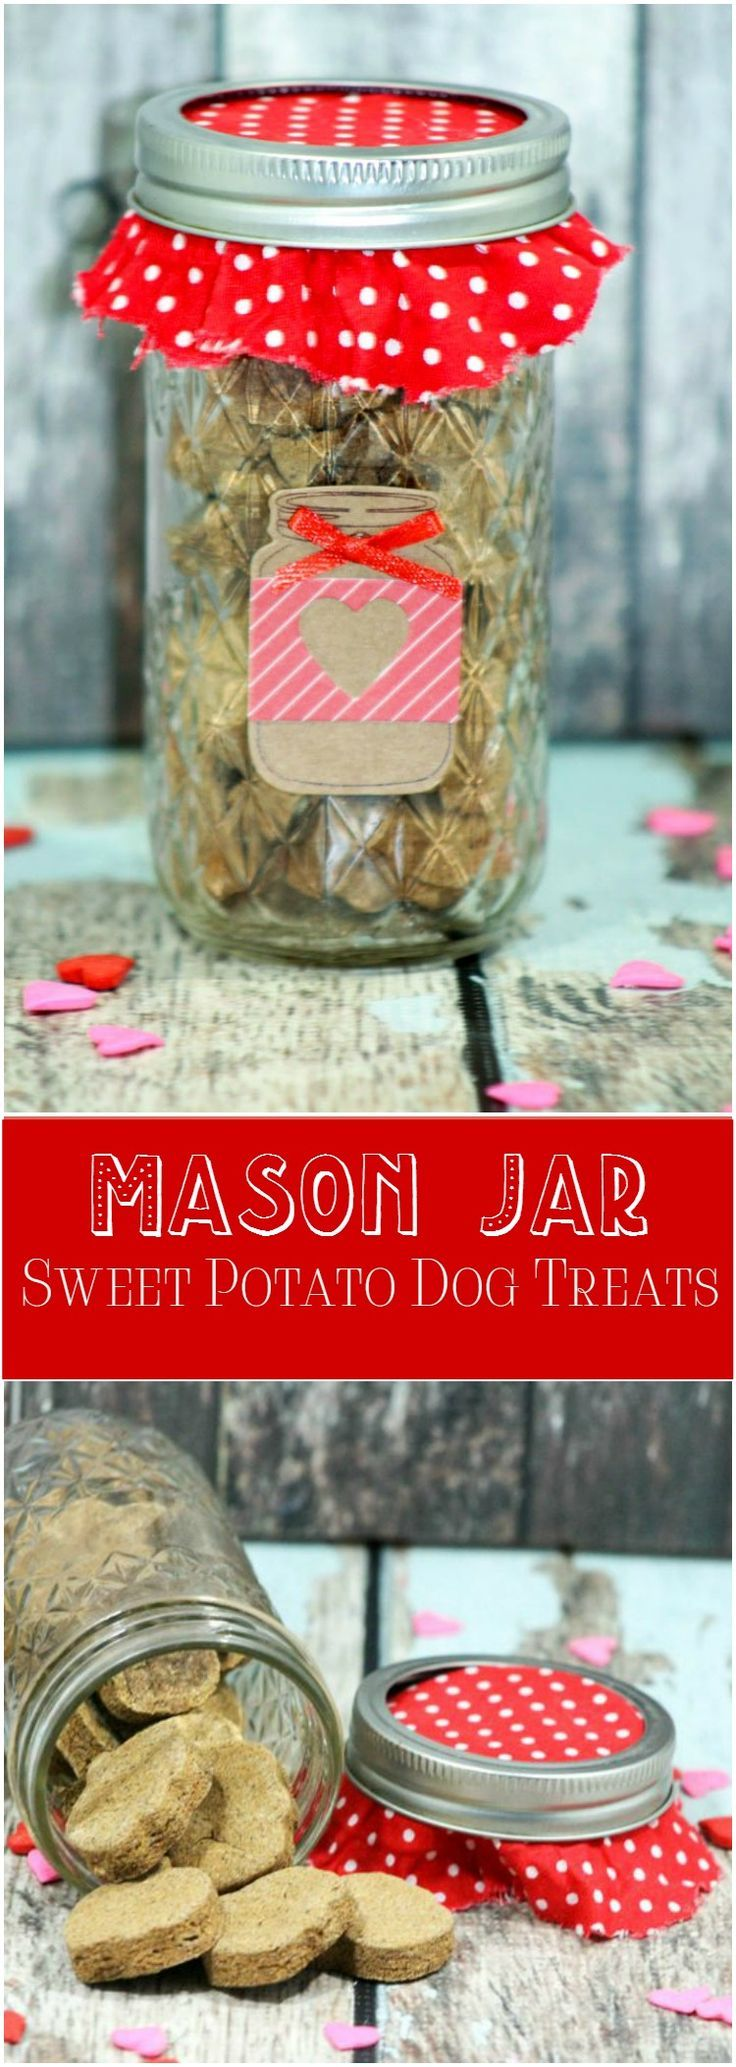 Looking for homemade dog treats recipes that are perfect for giving as gifts to fellow pet parents? Check out our mason jar dog snacks!